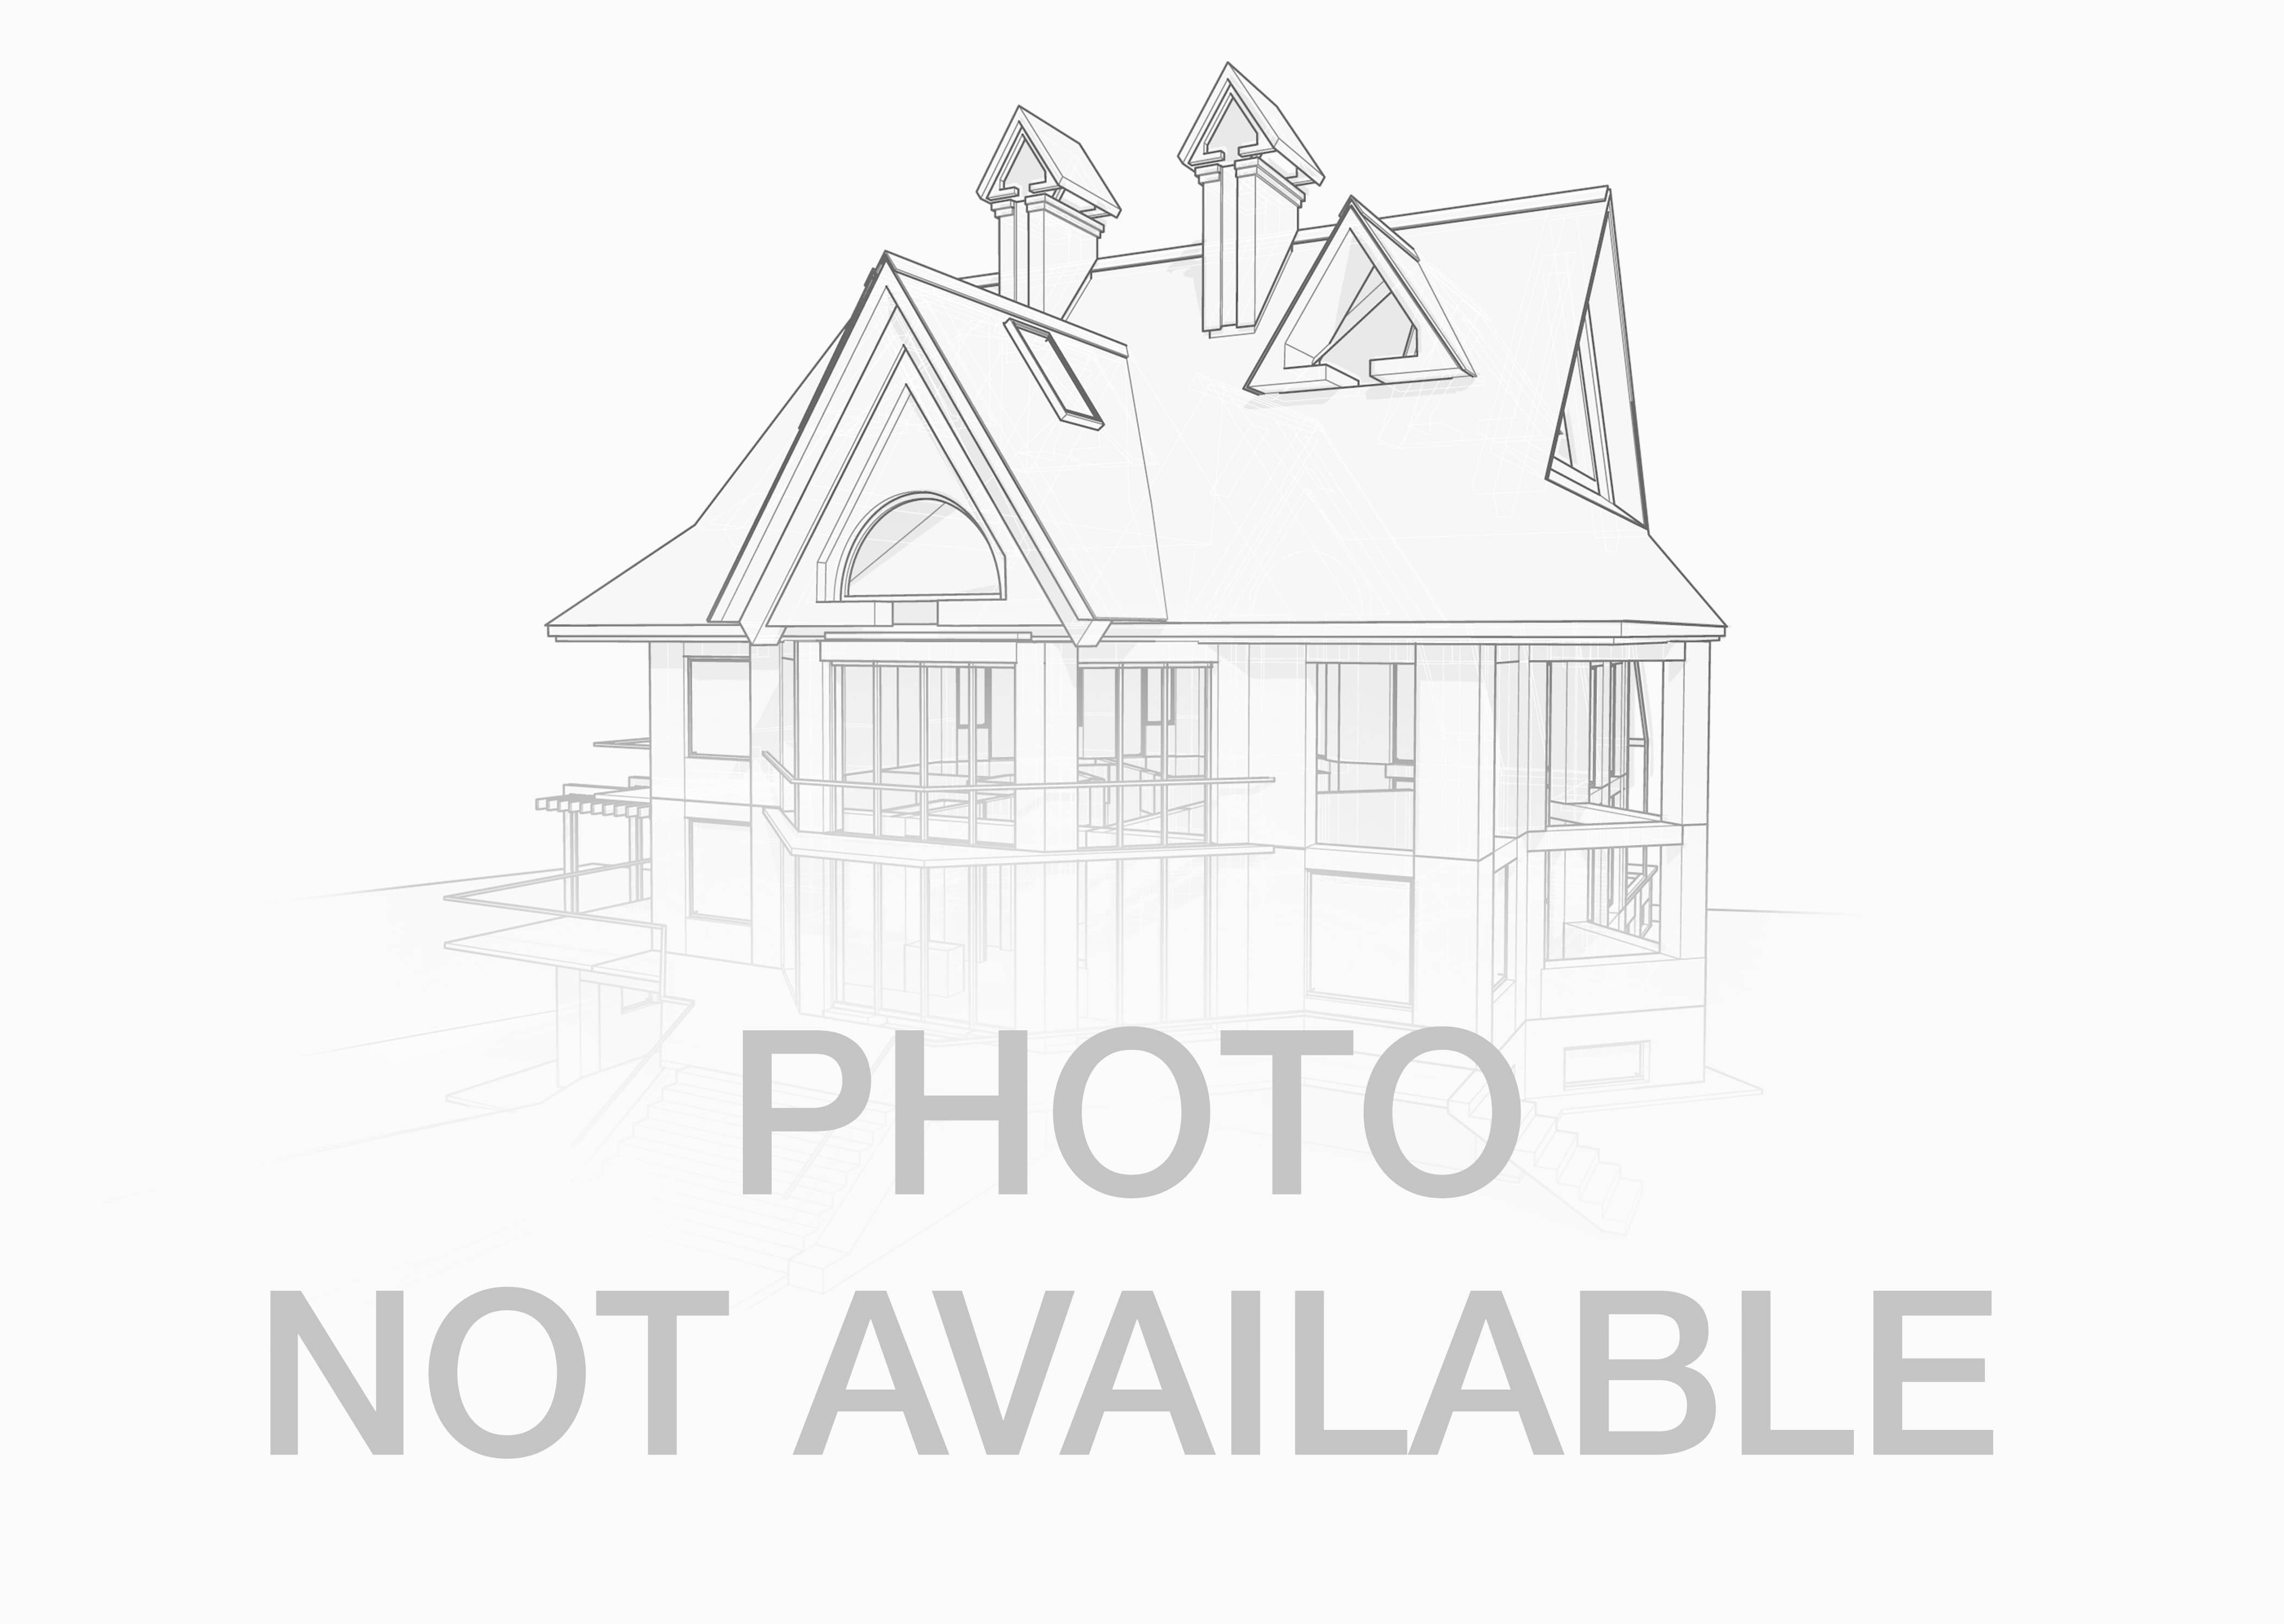 392 Sycamore Road, Griffithsville, WV 25521